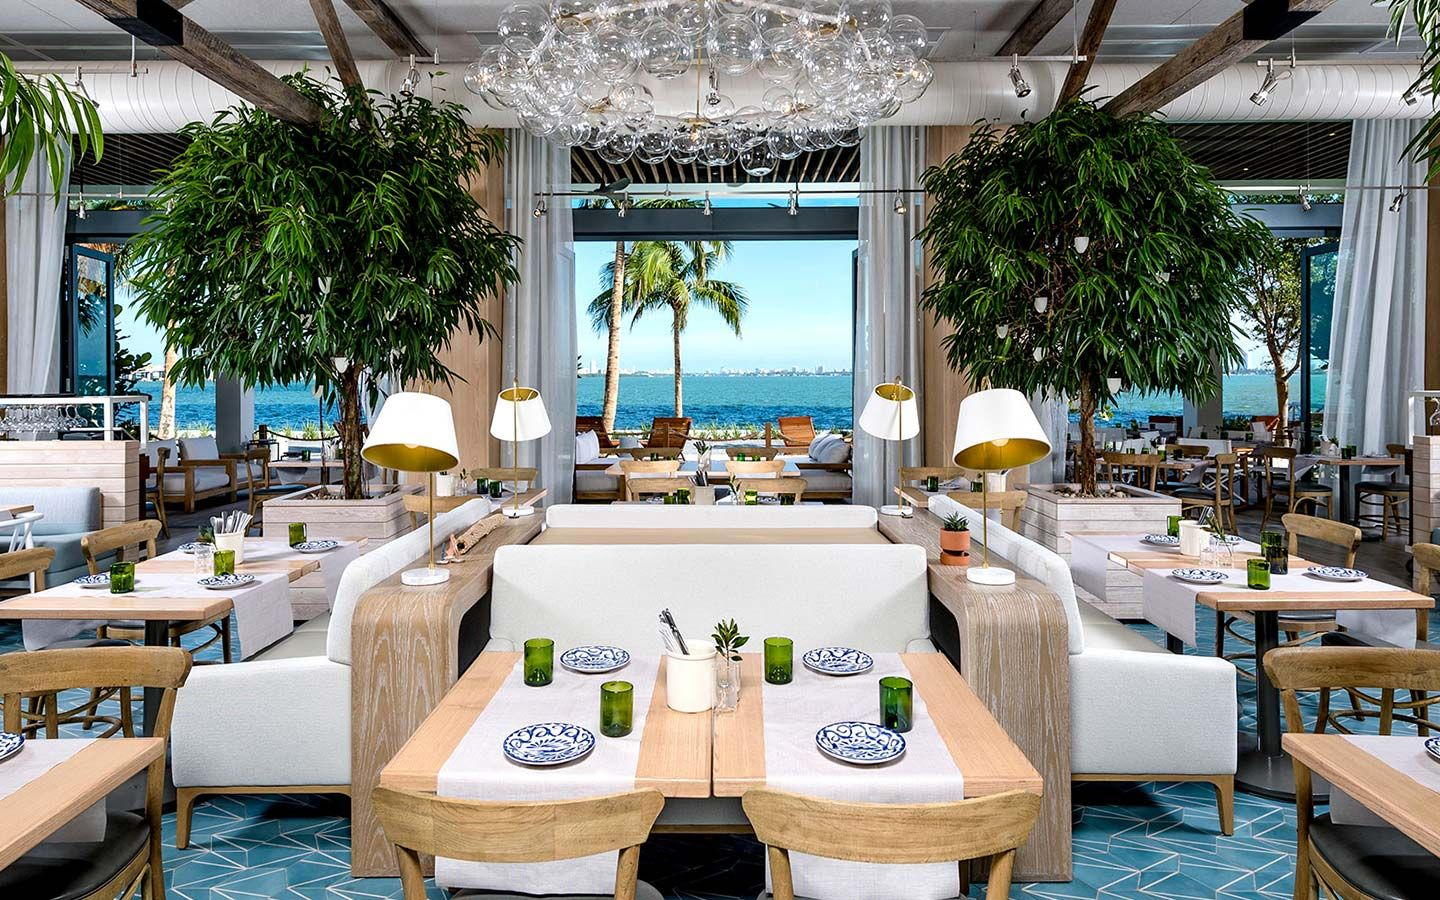 Miami's Notable Celebrity Chefs and Restaurateurs